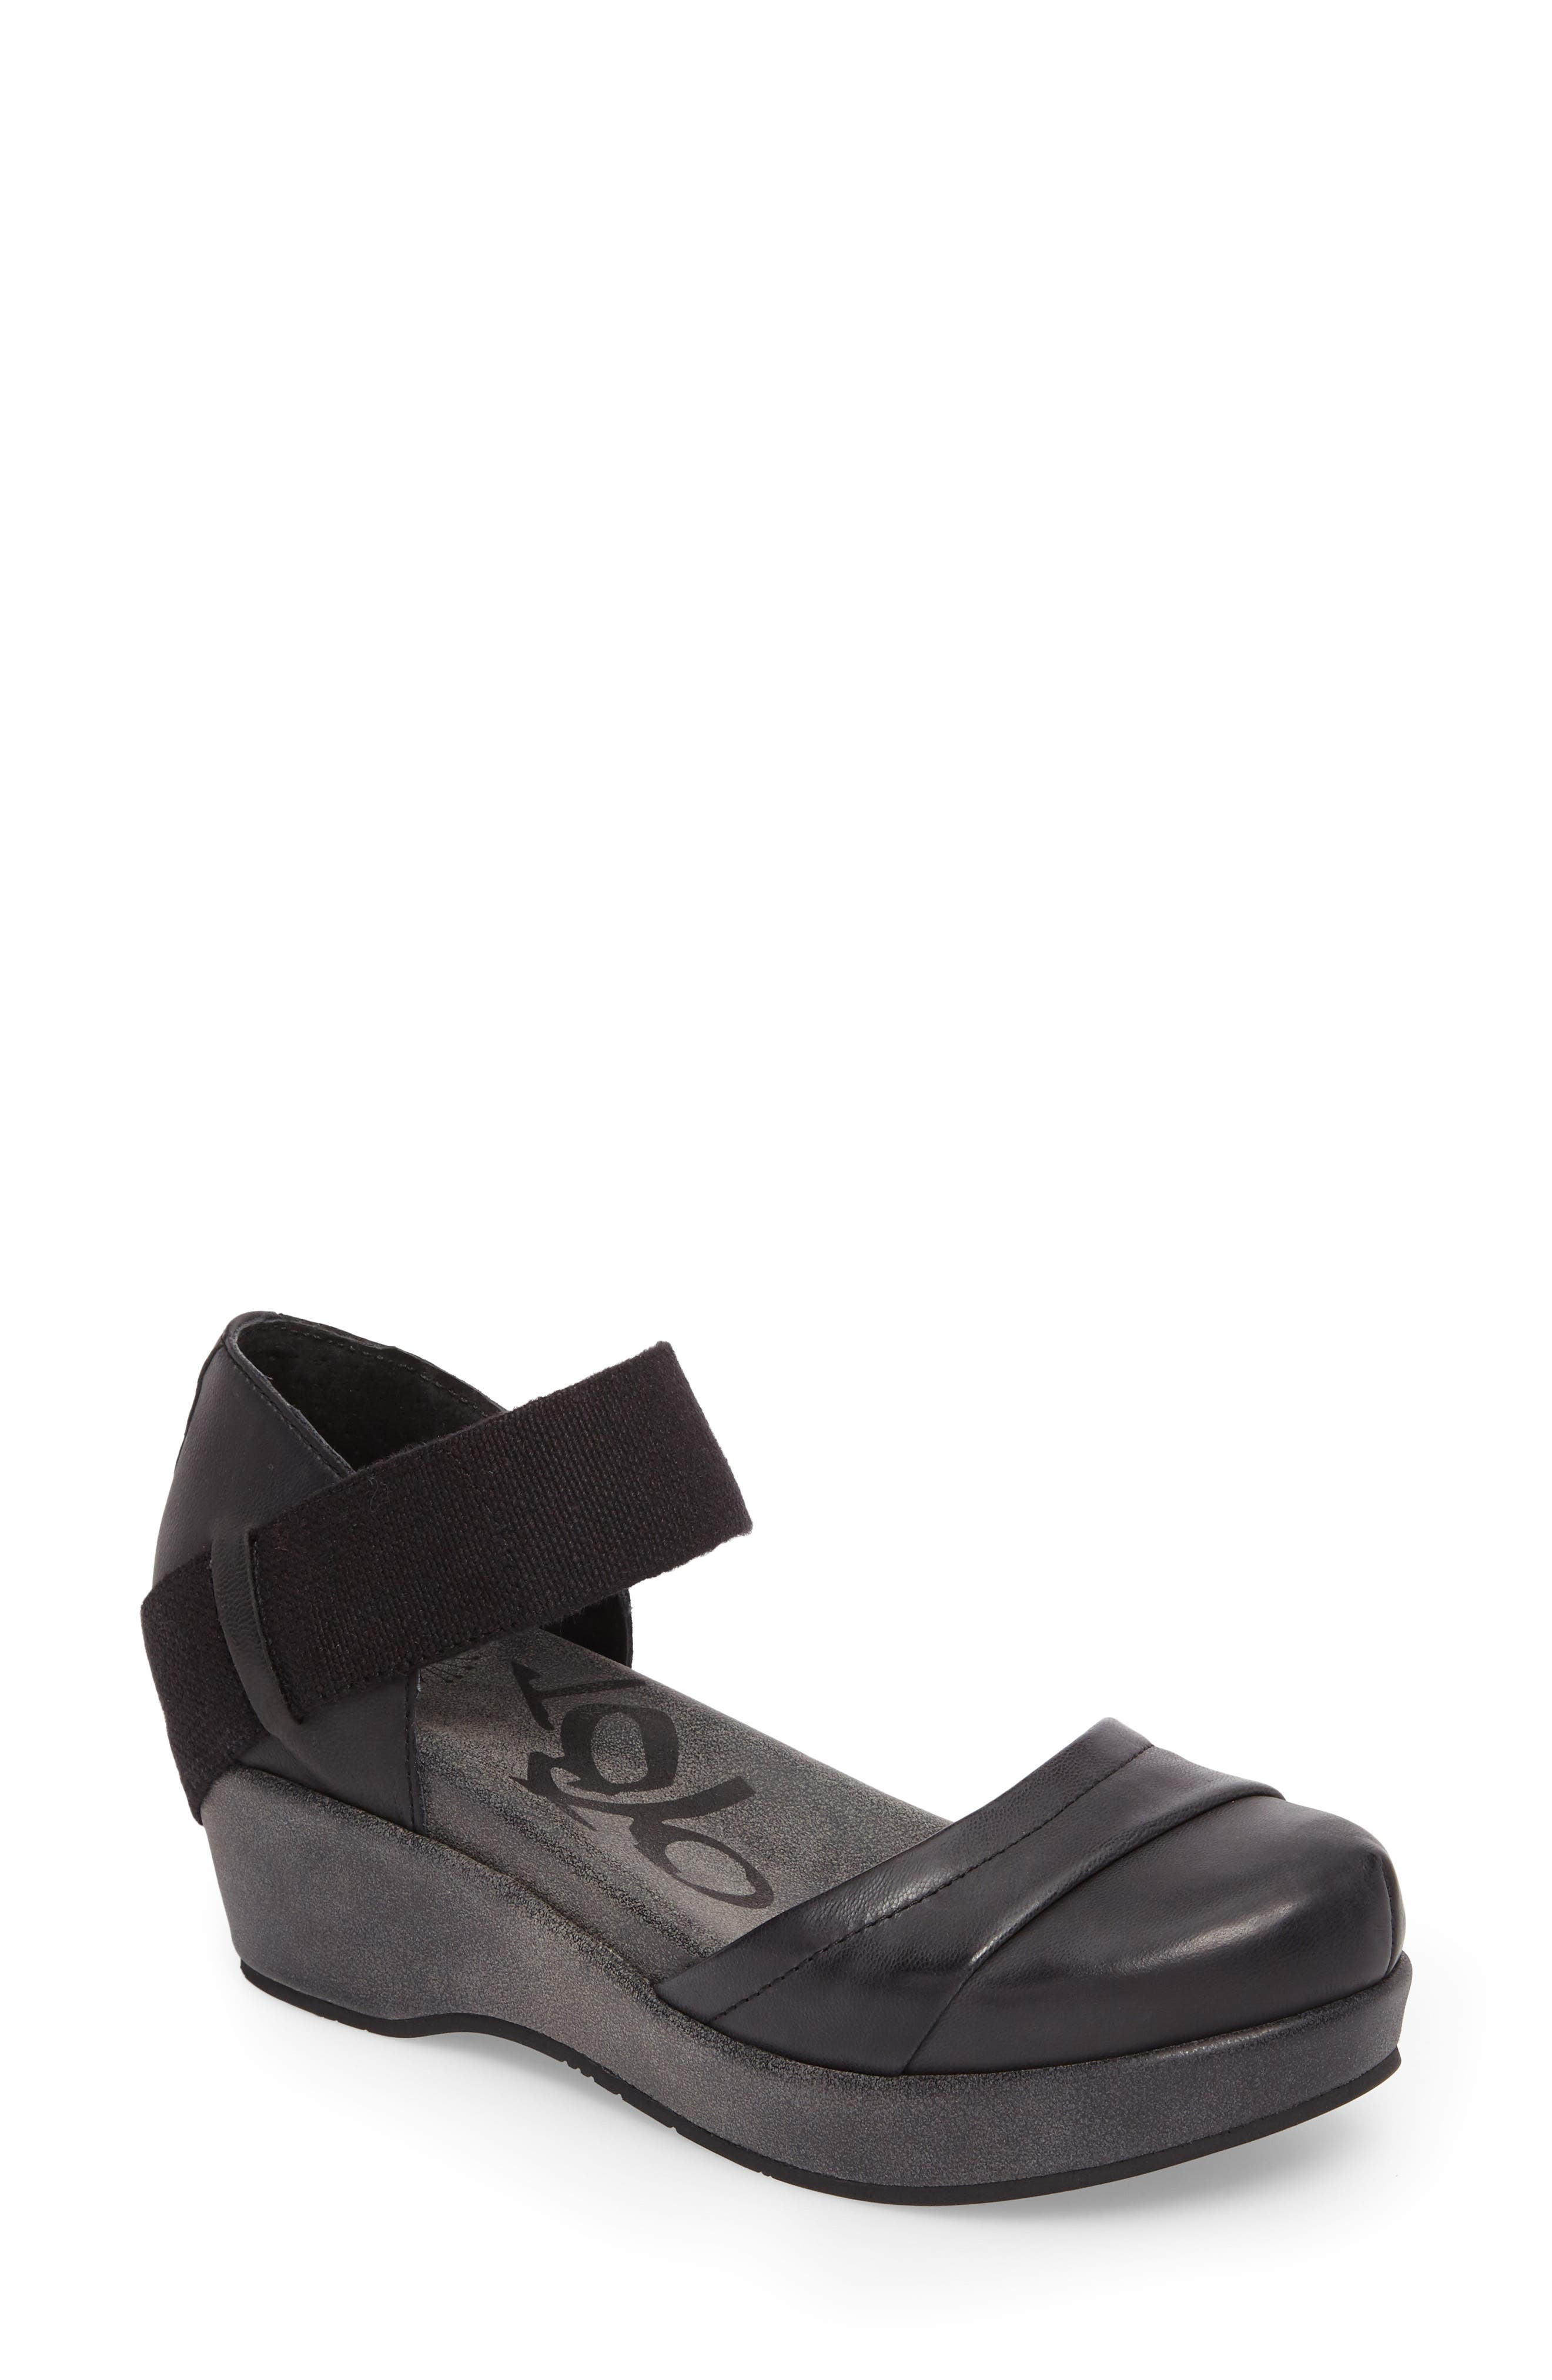 Wander Out Platform Pump,                         Main,                         color, 001